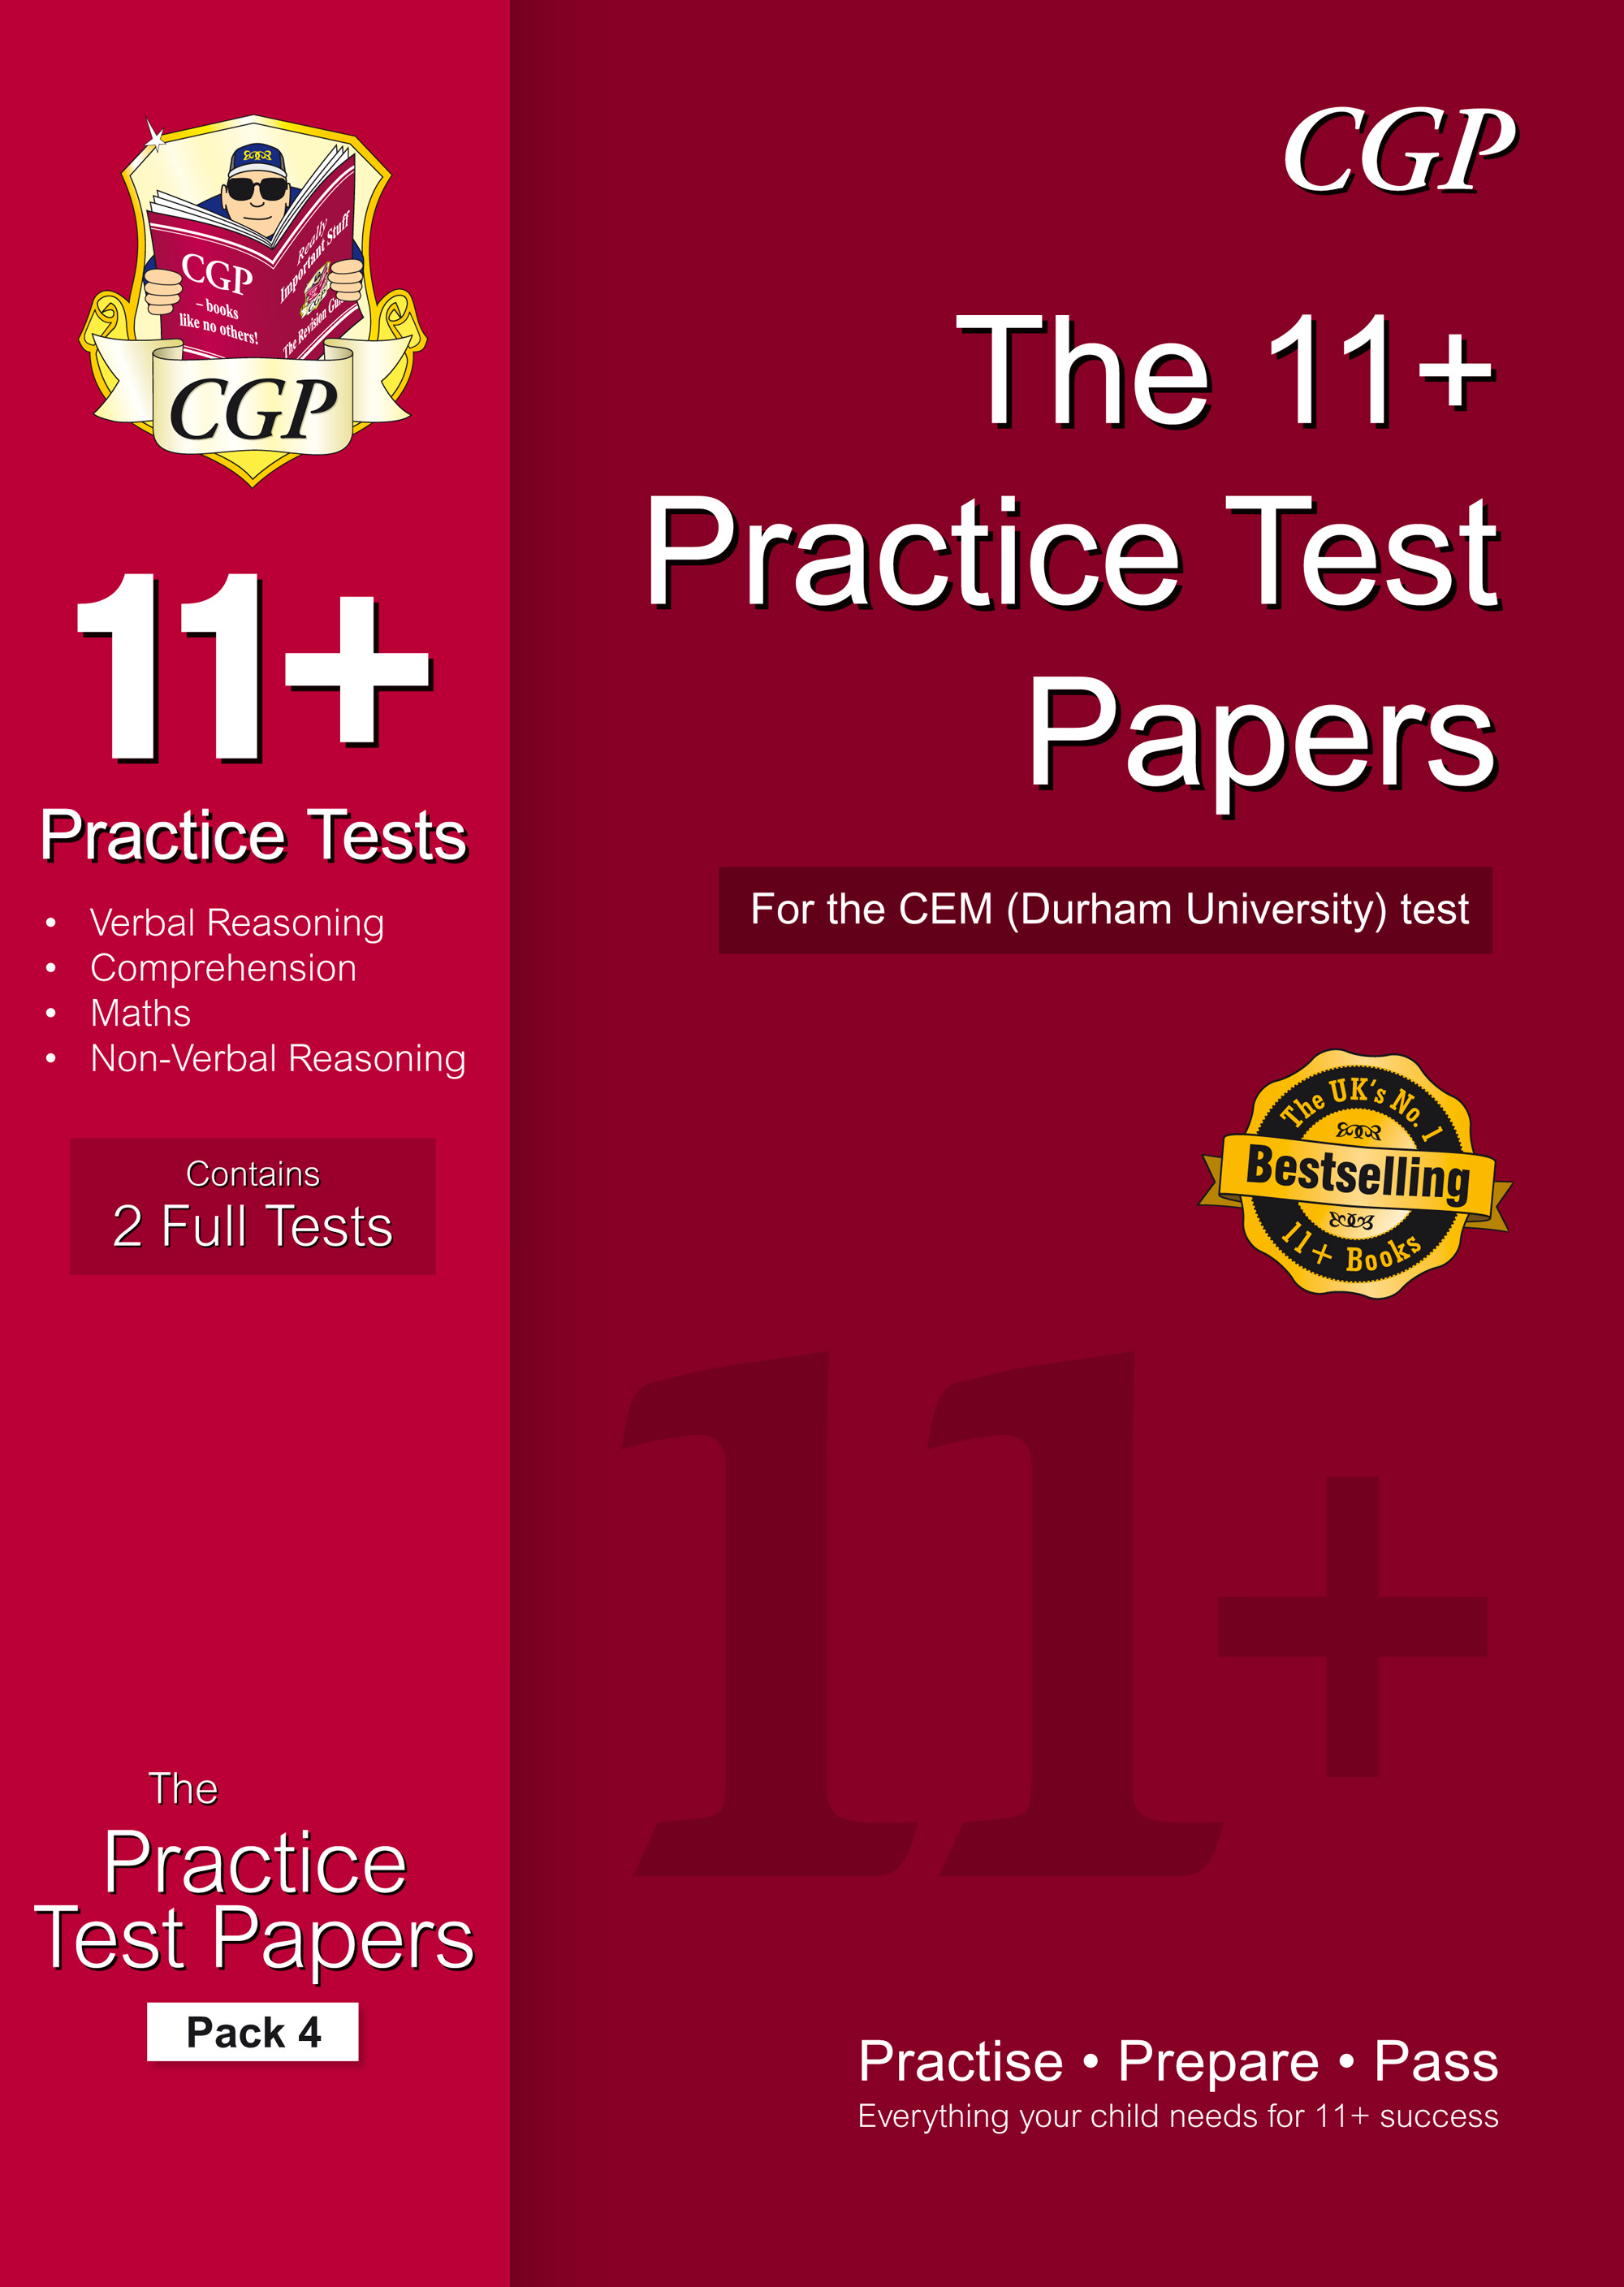 ELP4DE1 - 11+ Practice Papers for the CEM Test - Pack 4